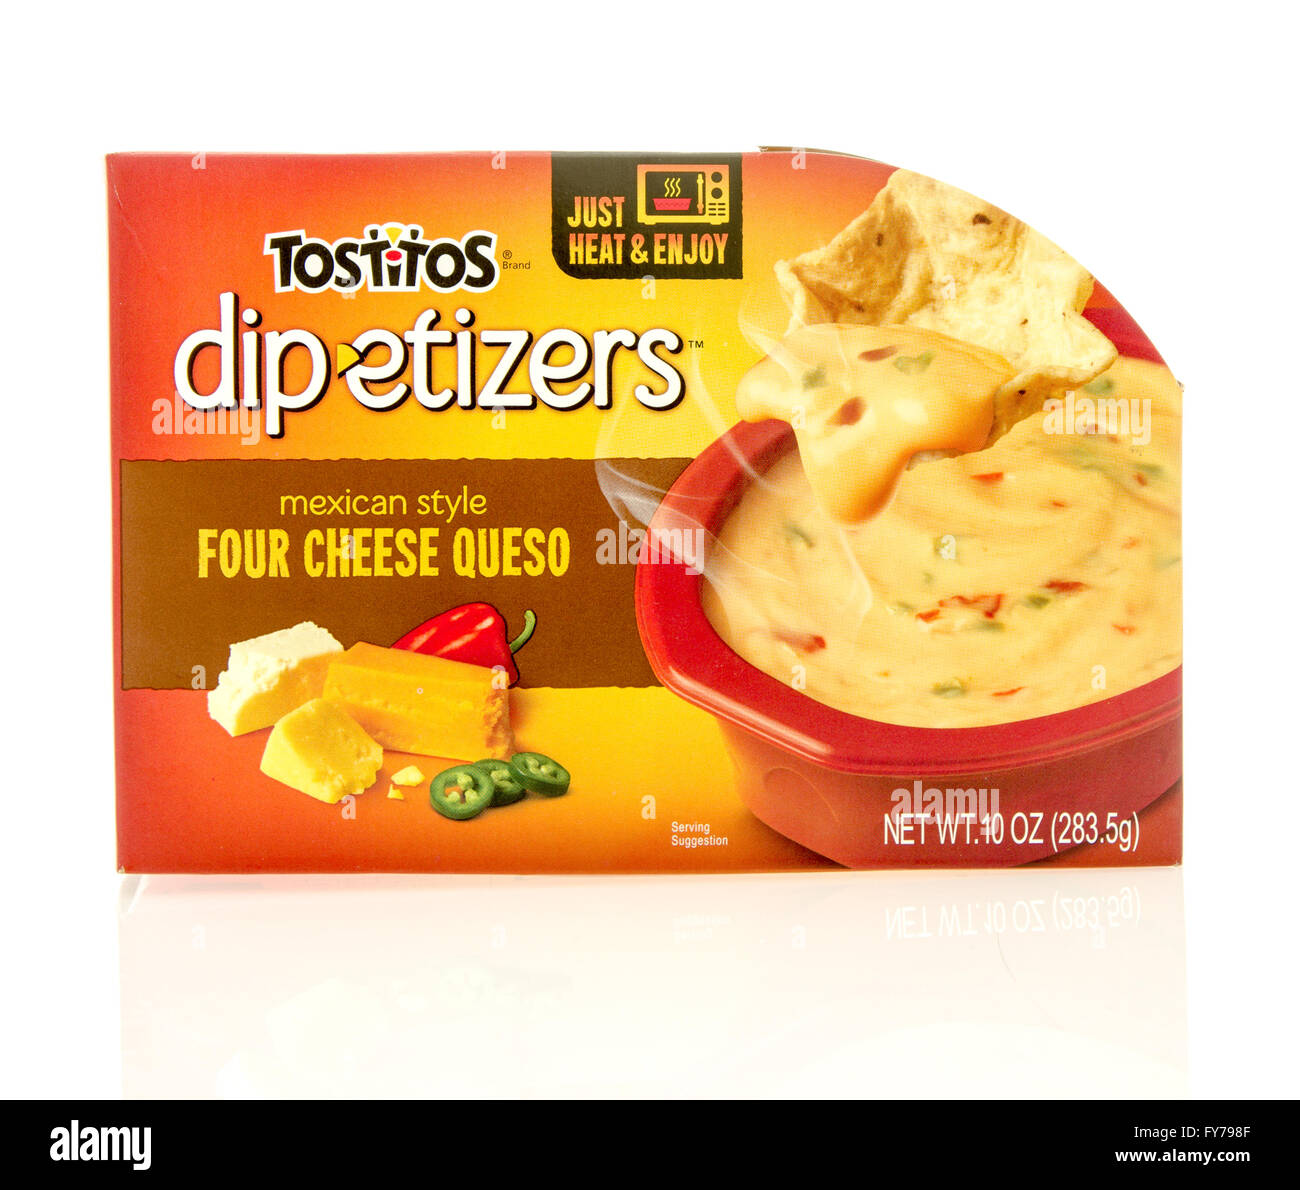 Winneconne, WI - 23 Dec 2015: Package of Totitos dipetizers mexican style in four cheese queso flavor. Stock Photo